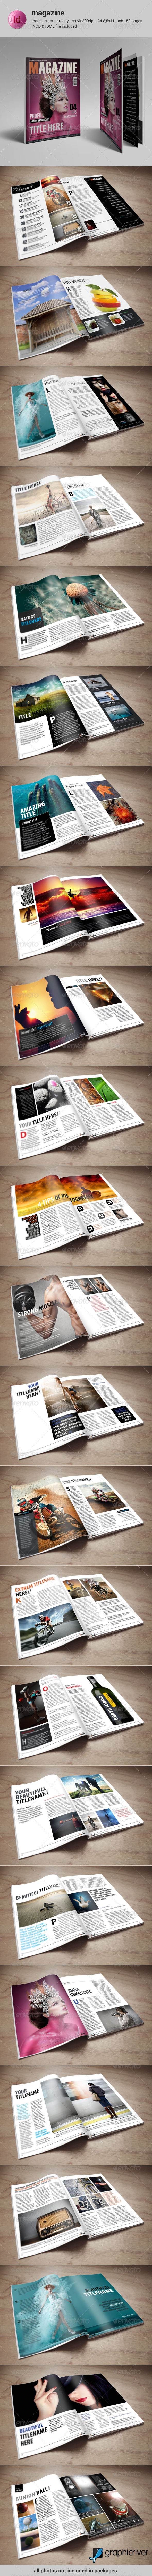 GraphicRiver 50 Pages Indesign Magazine Template 8715685